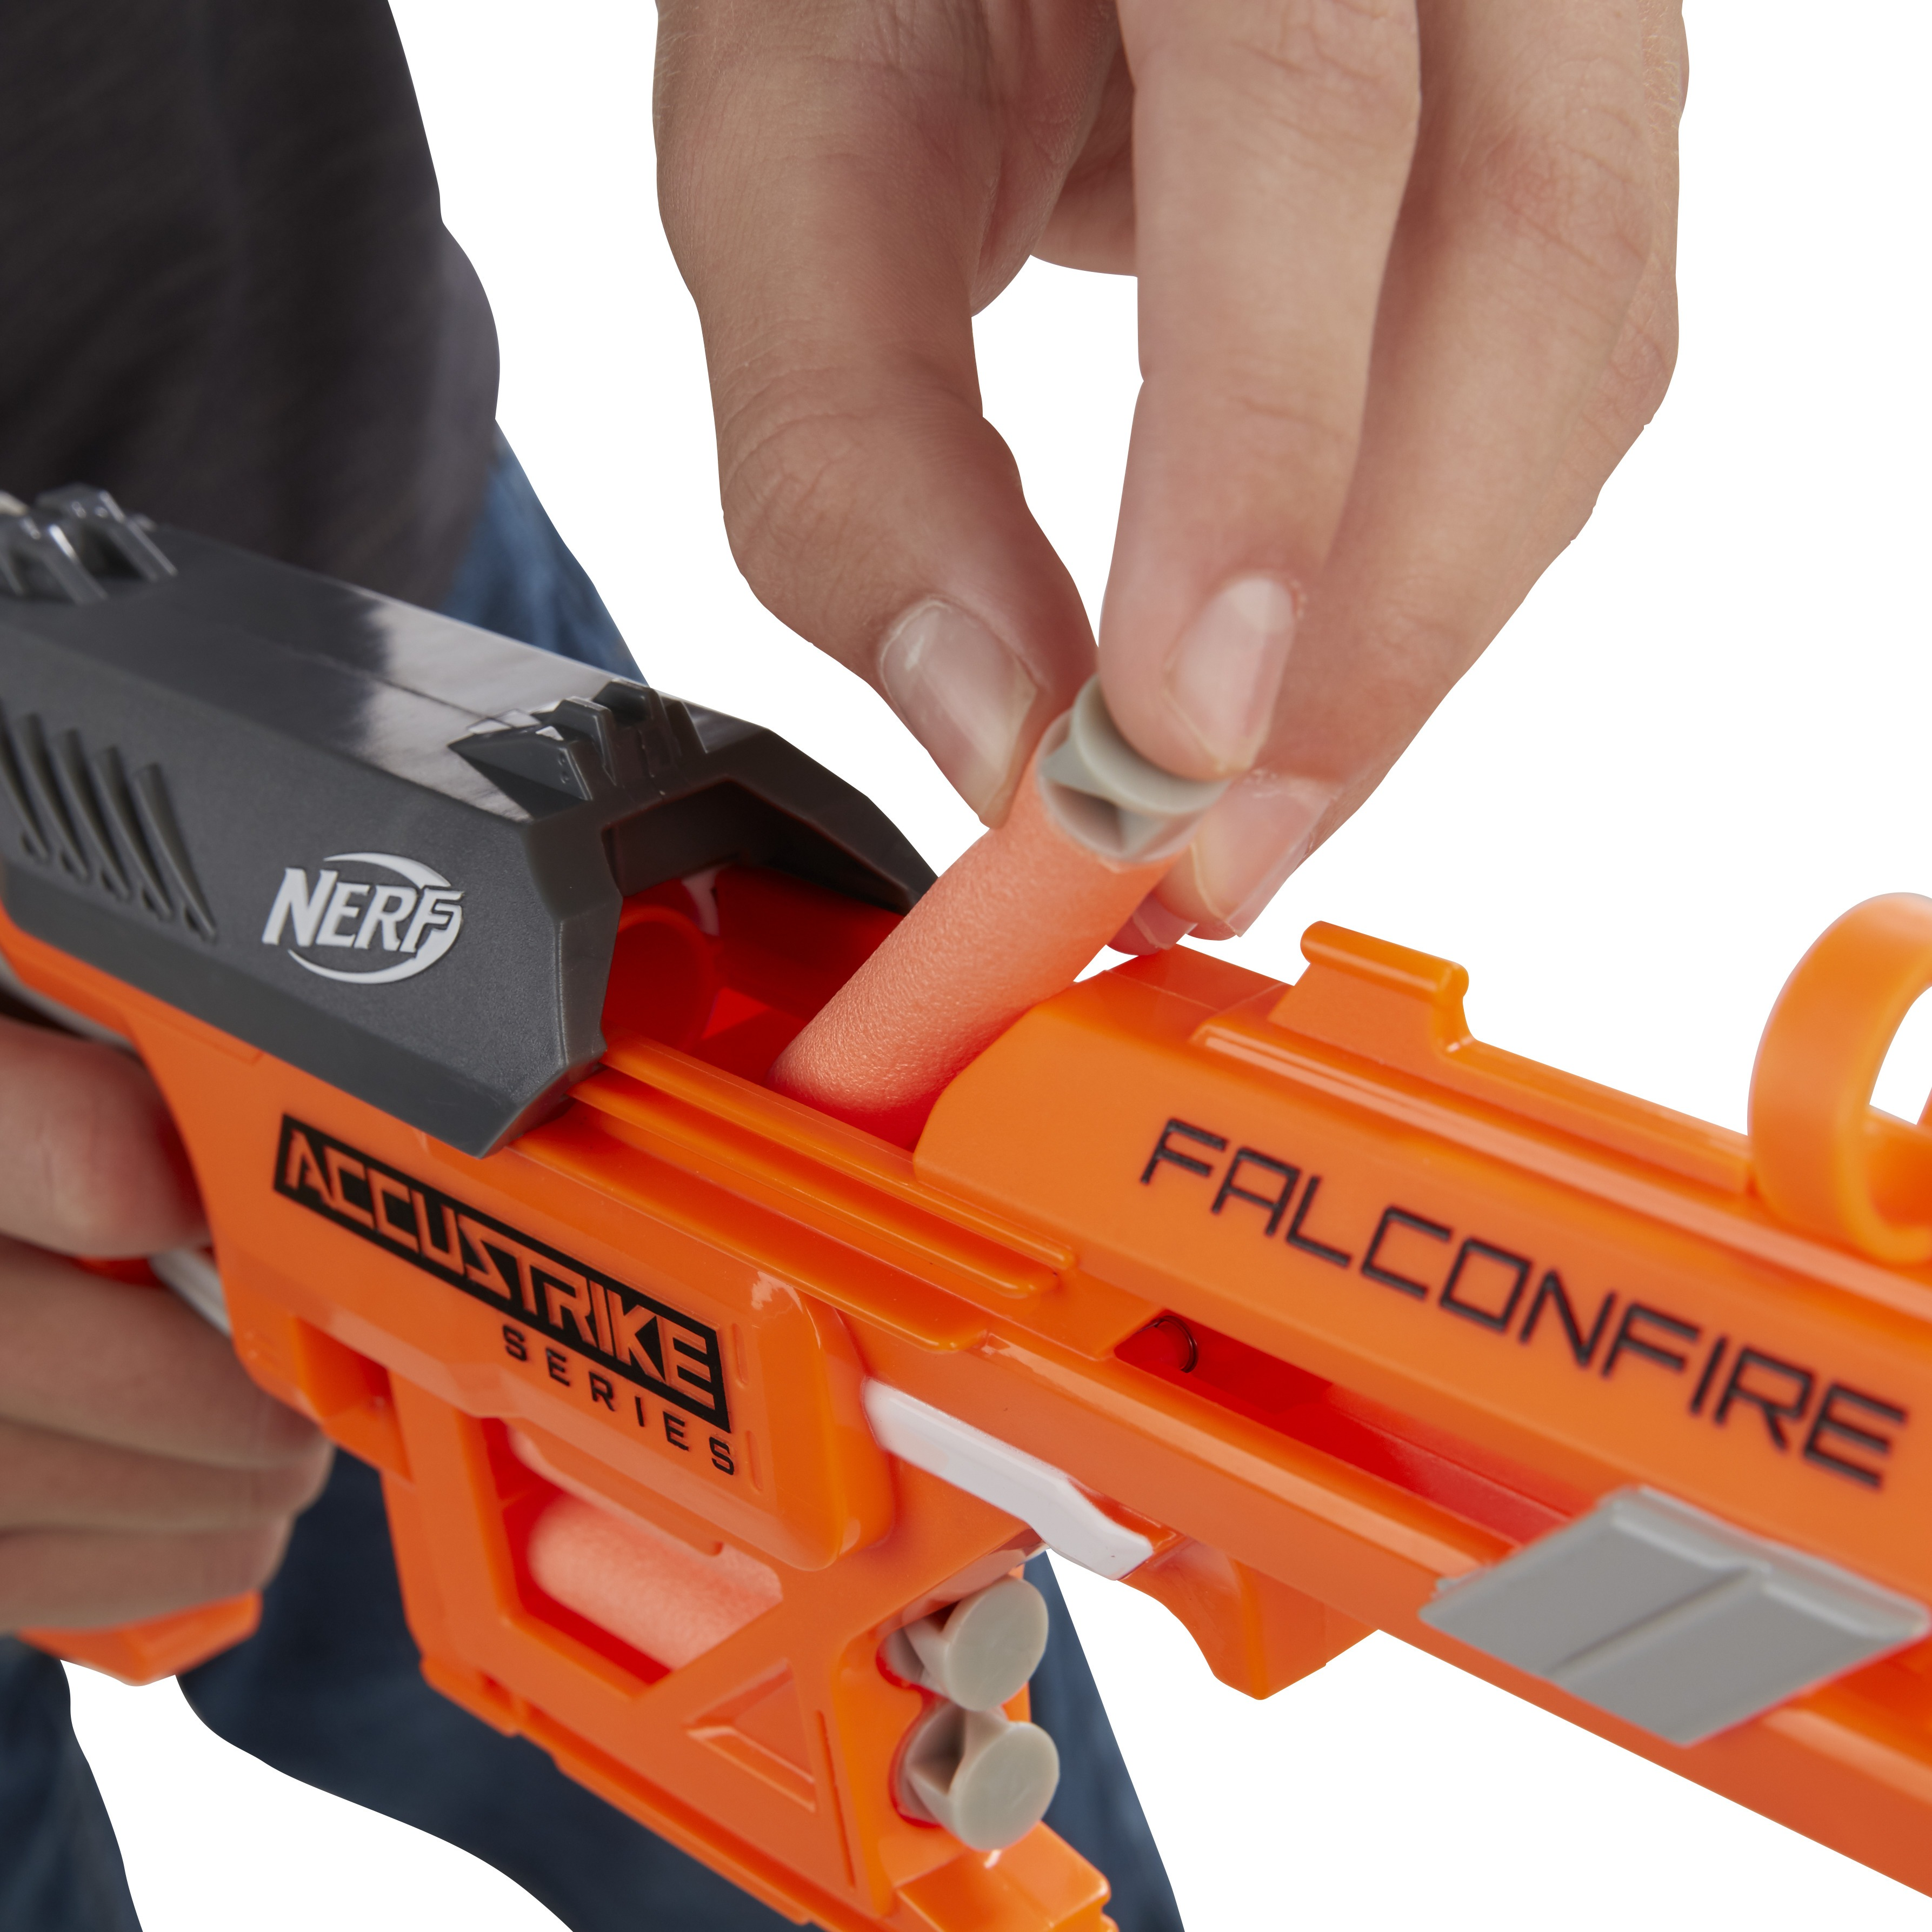 Nerf Accustrike - By Megan Kelly